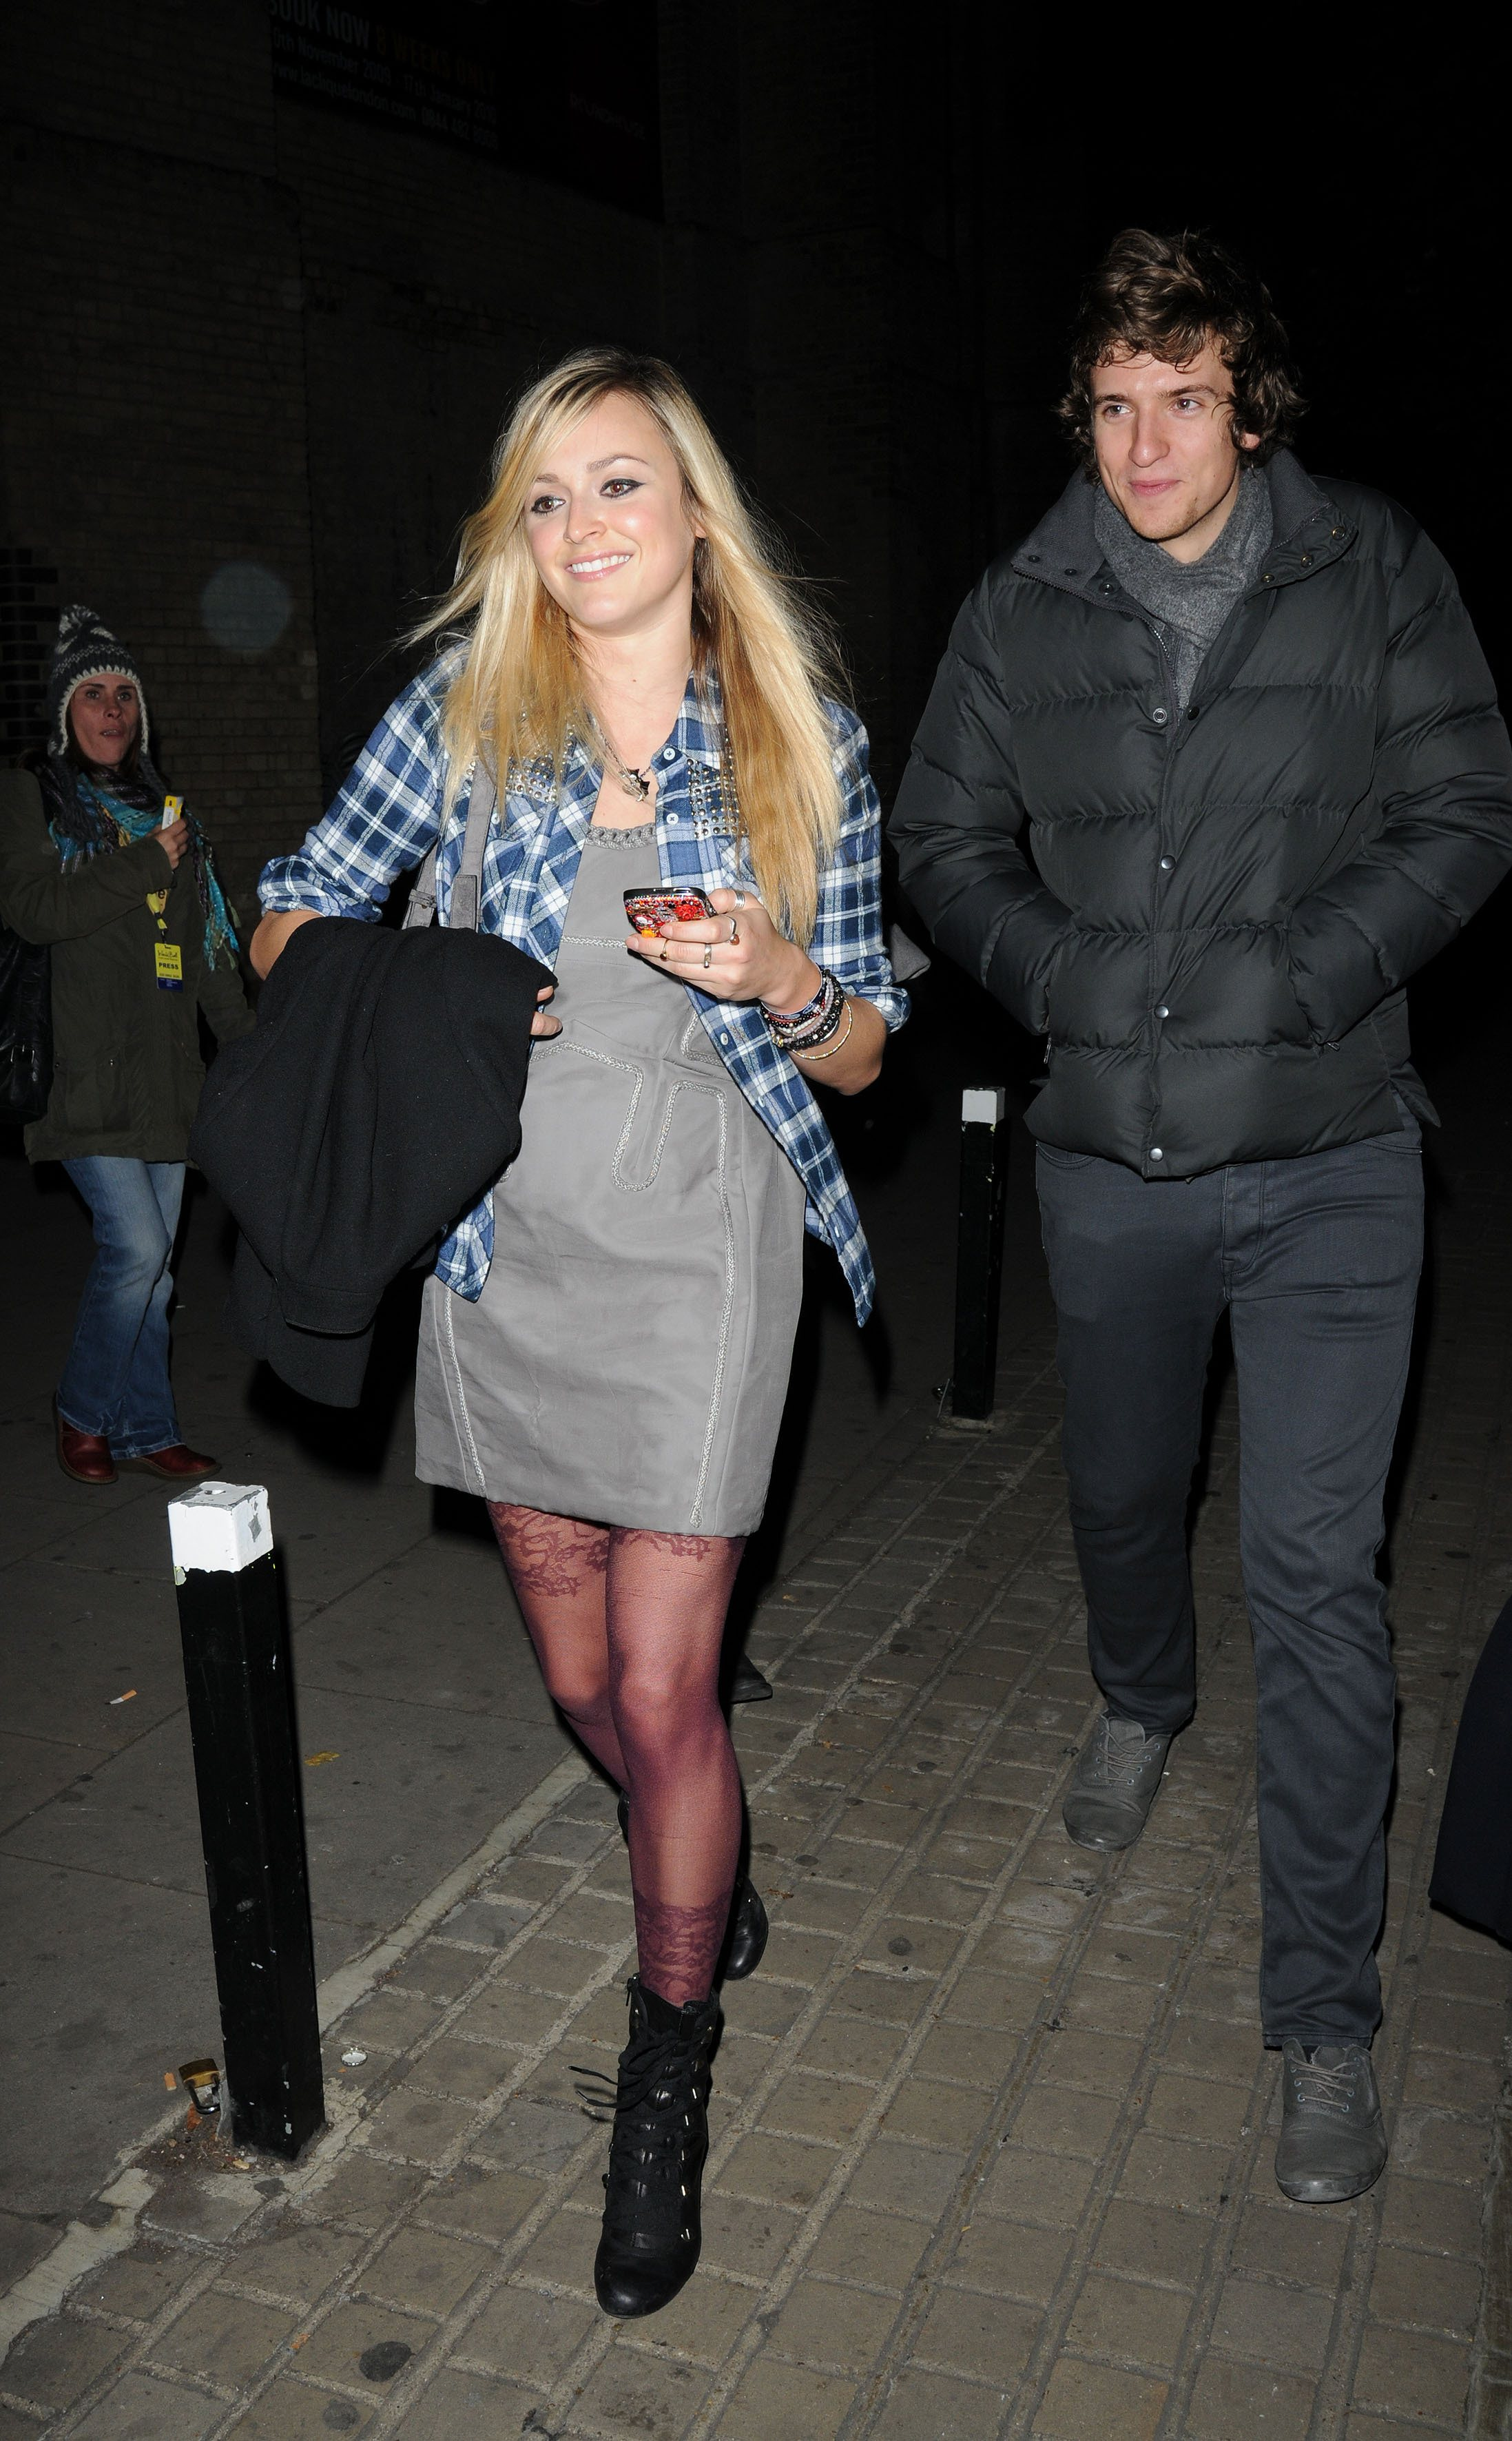 06349_Fearne_Cotton_Arrives_for_Robbie_Williams_gig_as_part_of_BBC_Electric_Proms_Festival_03_122_196lo.jpg